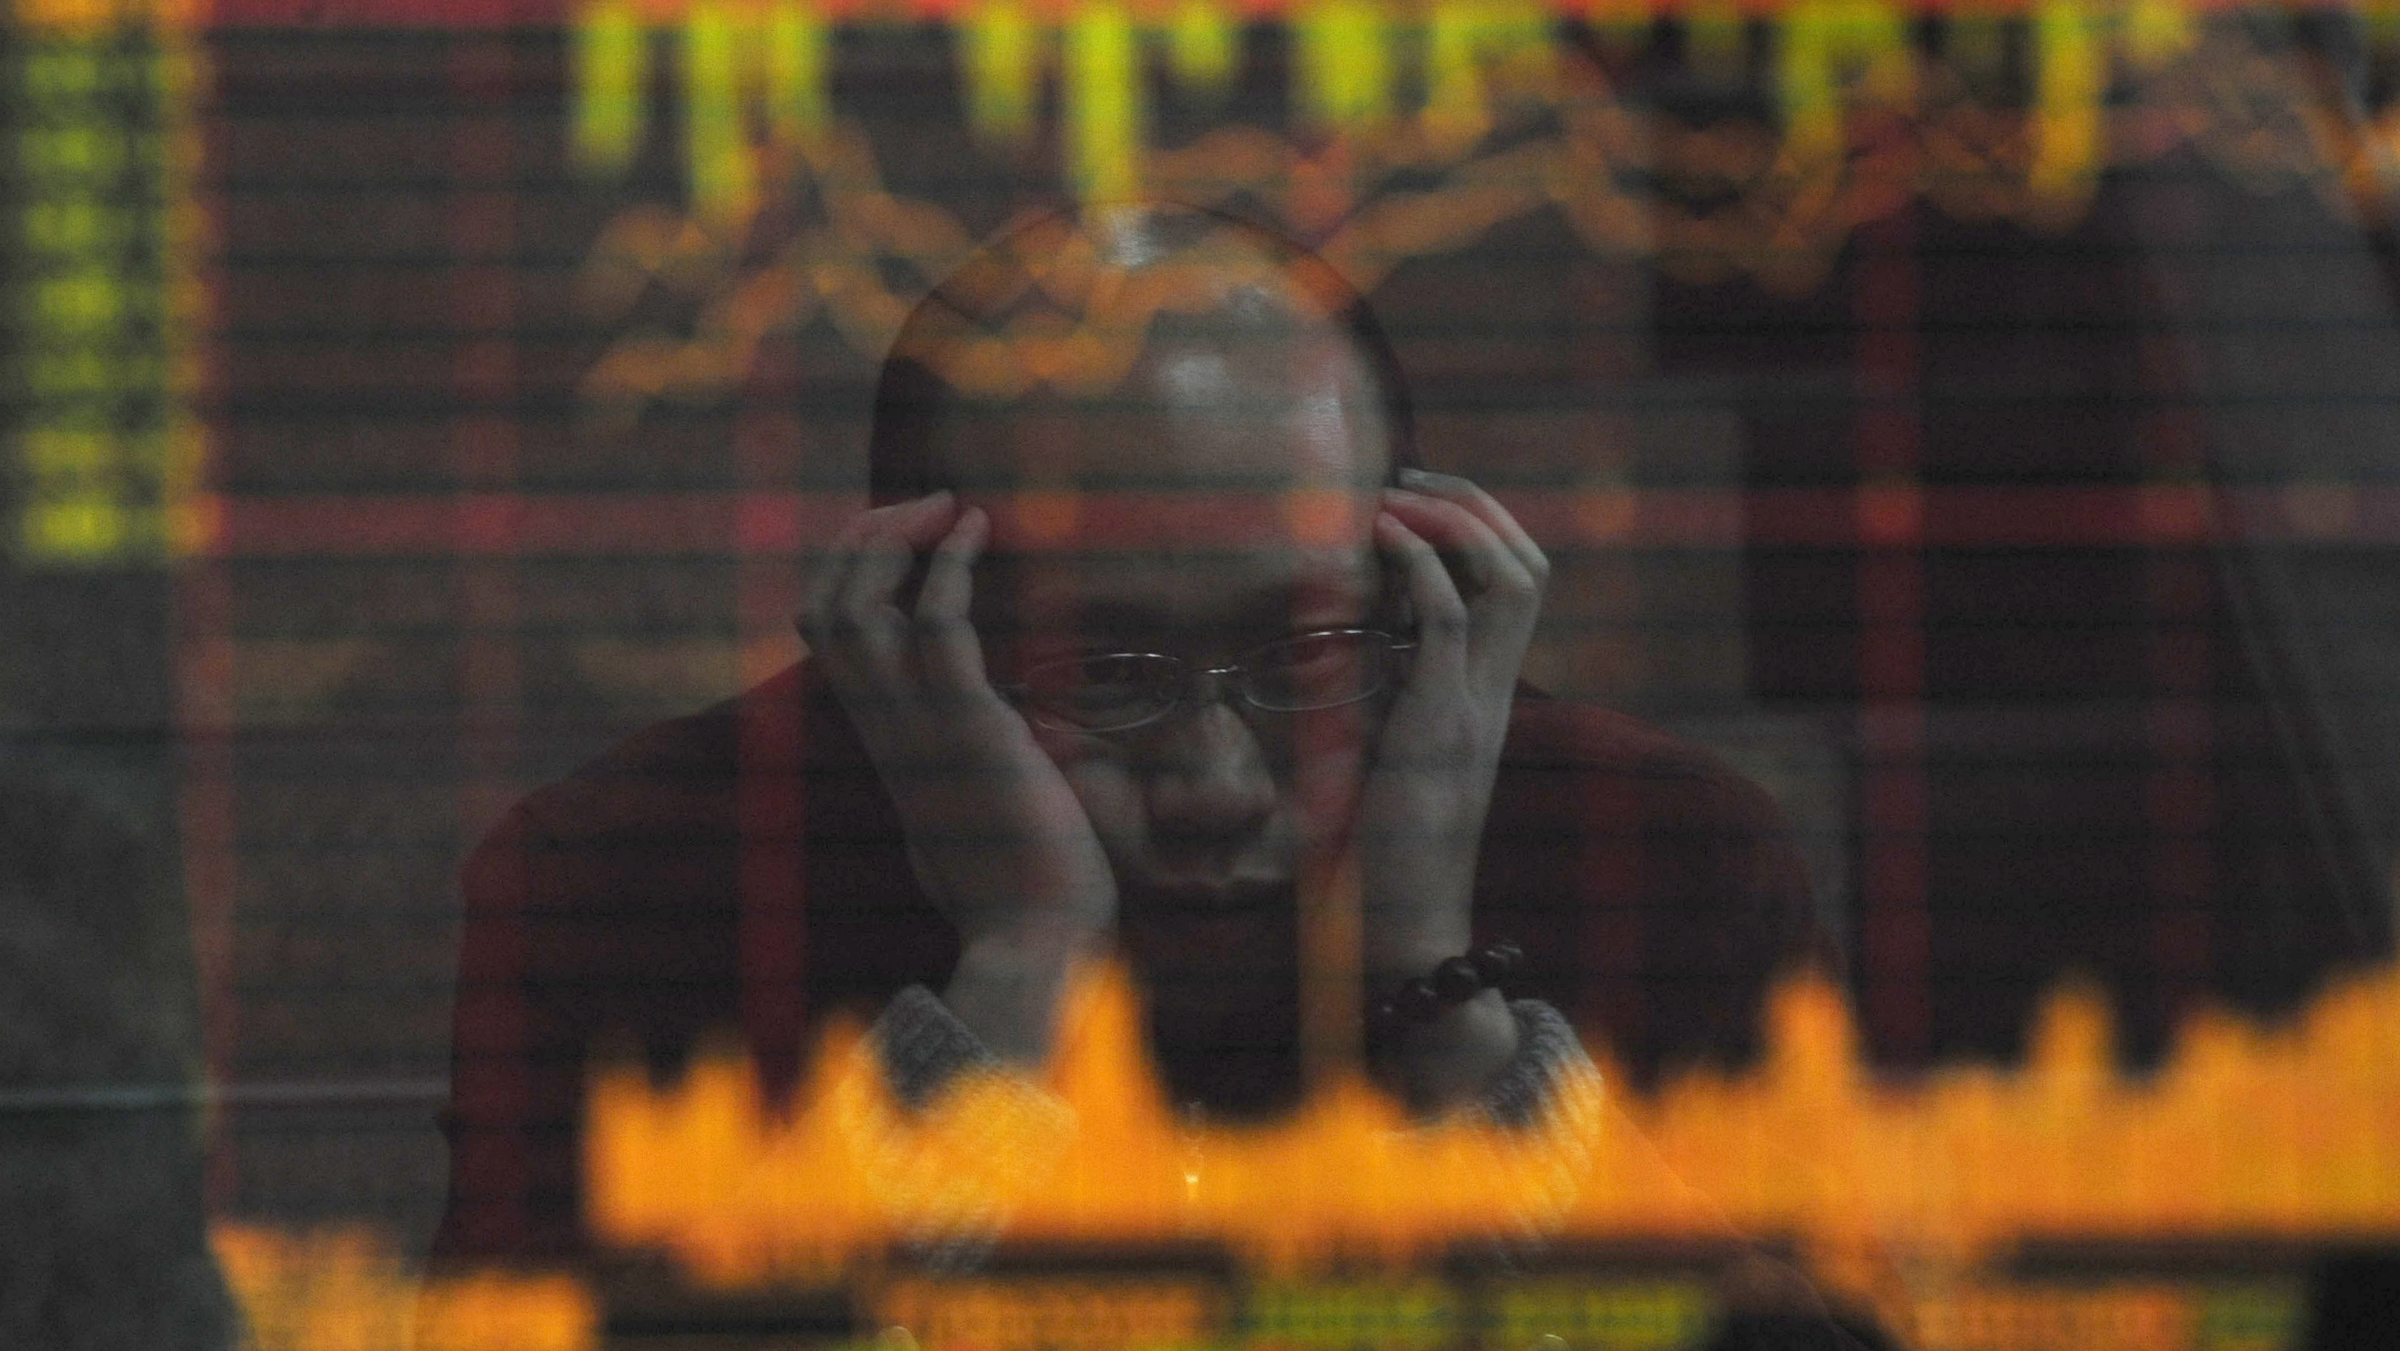 An investor is reflected in a screen showing stock information at a brokerage house in Hefei, Anhui province February 18, 2009. China's stock market tumbled for a second straight day on Wednesday, and turnover shrank, because of fears that a surge in January bank lending could prove negative for the economy rather than signalling a recovery. REUTERS/Stringer